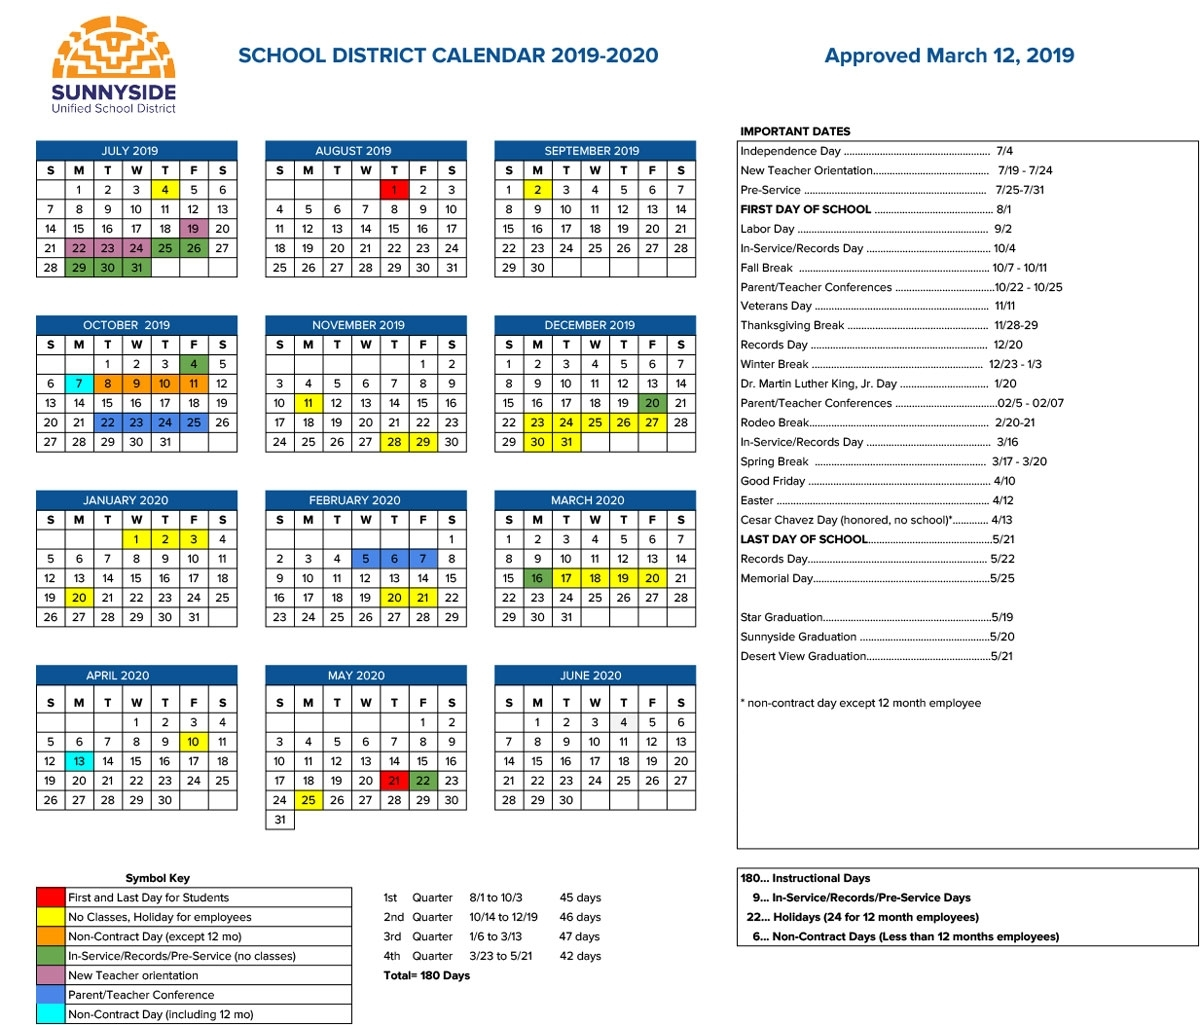 Academic Calendar | Sunnyside Unified School District intended for Calendar With Special Days 2020